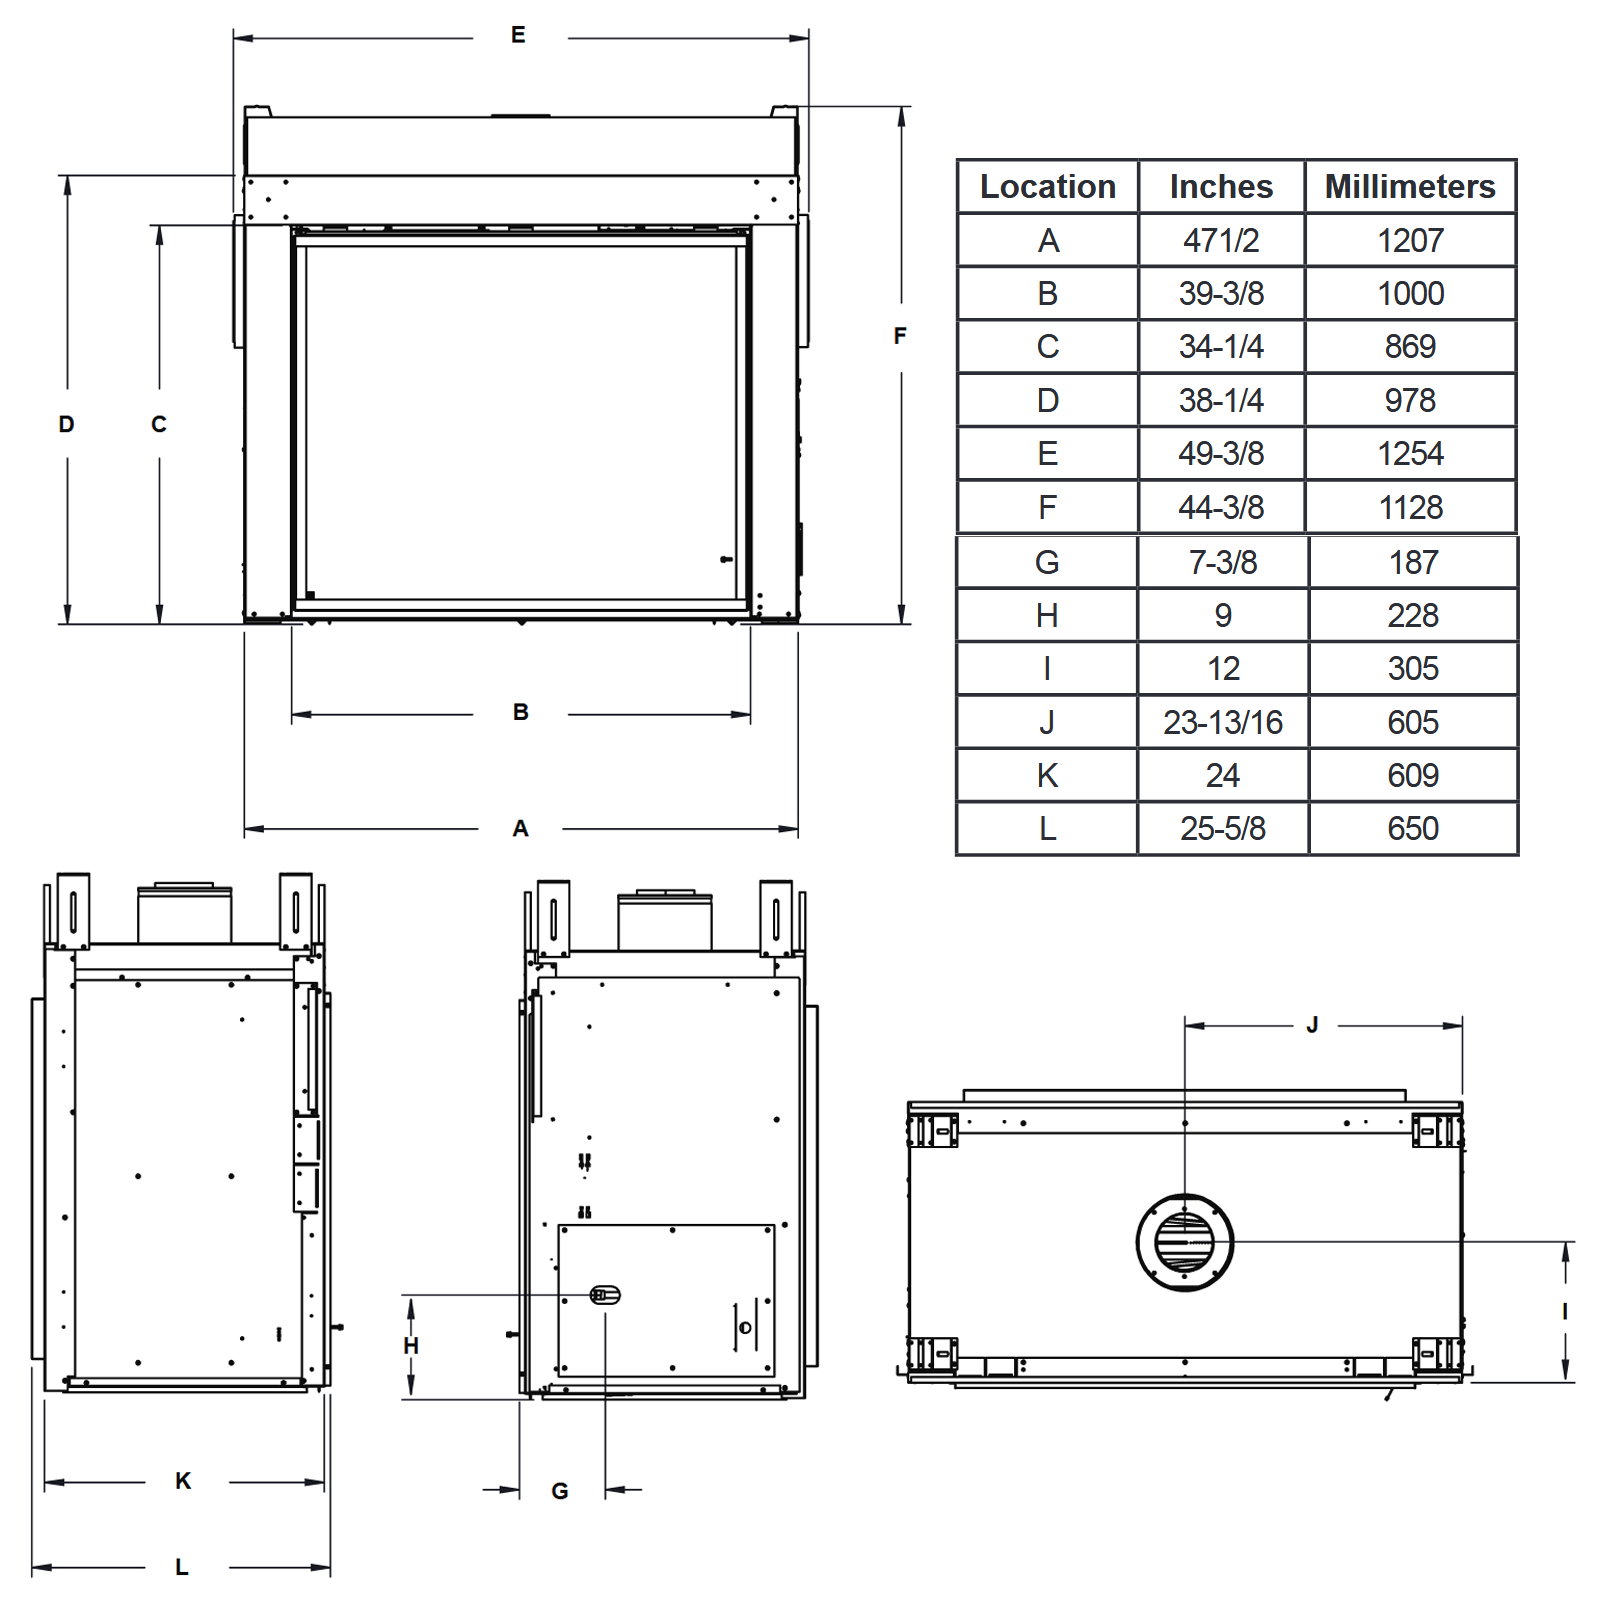 ODFORTG-36 Technical Drawing 1